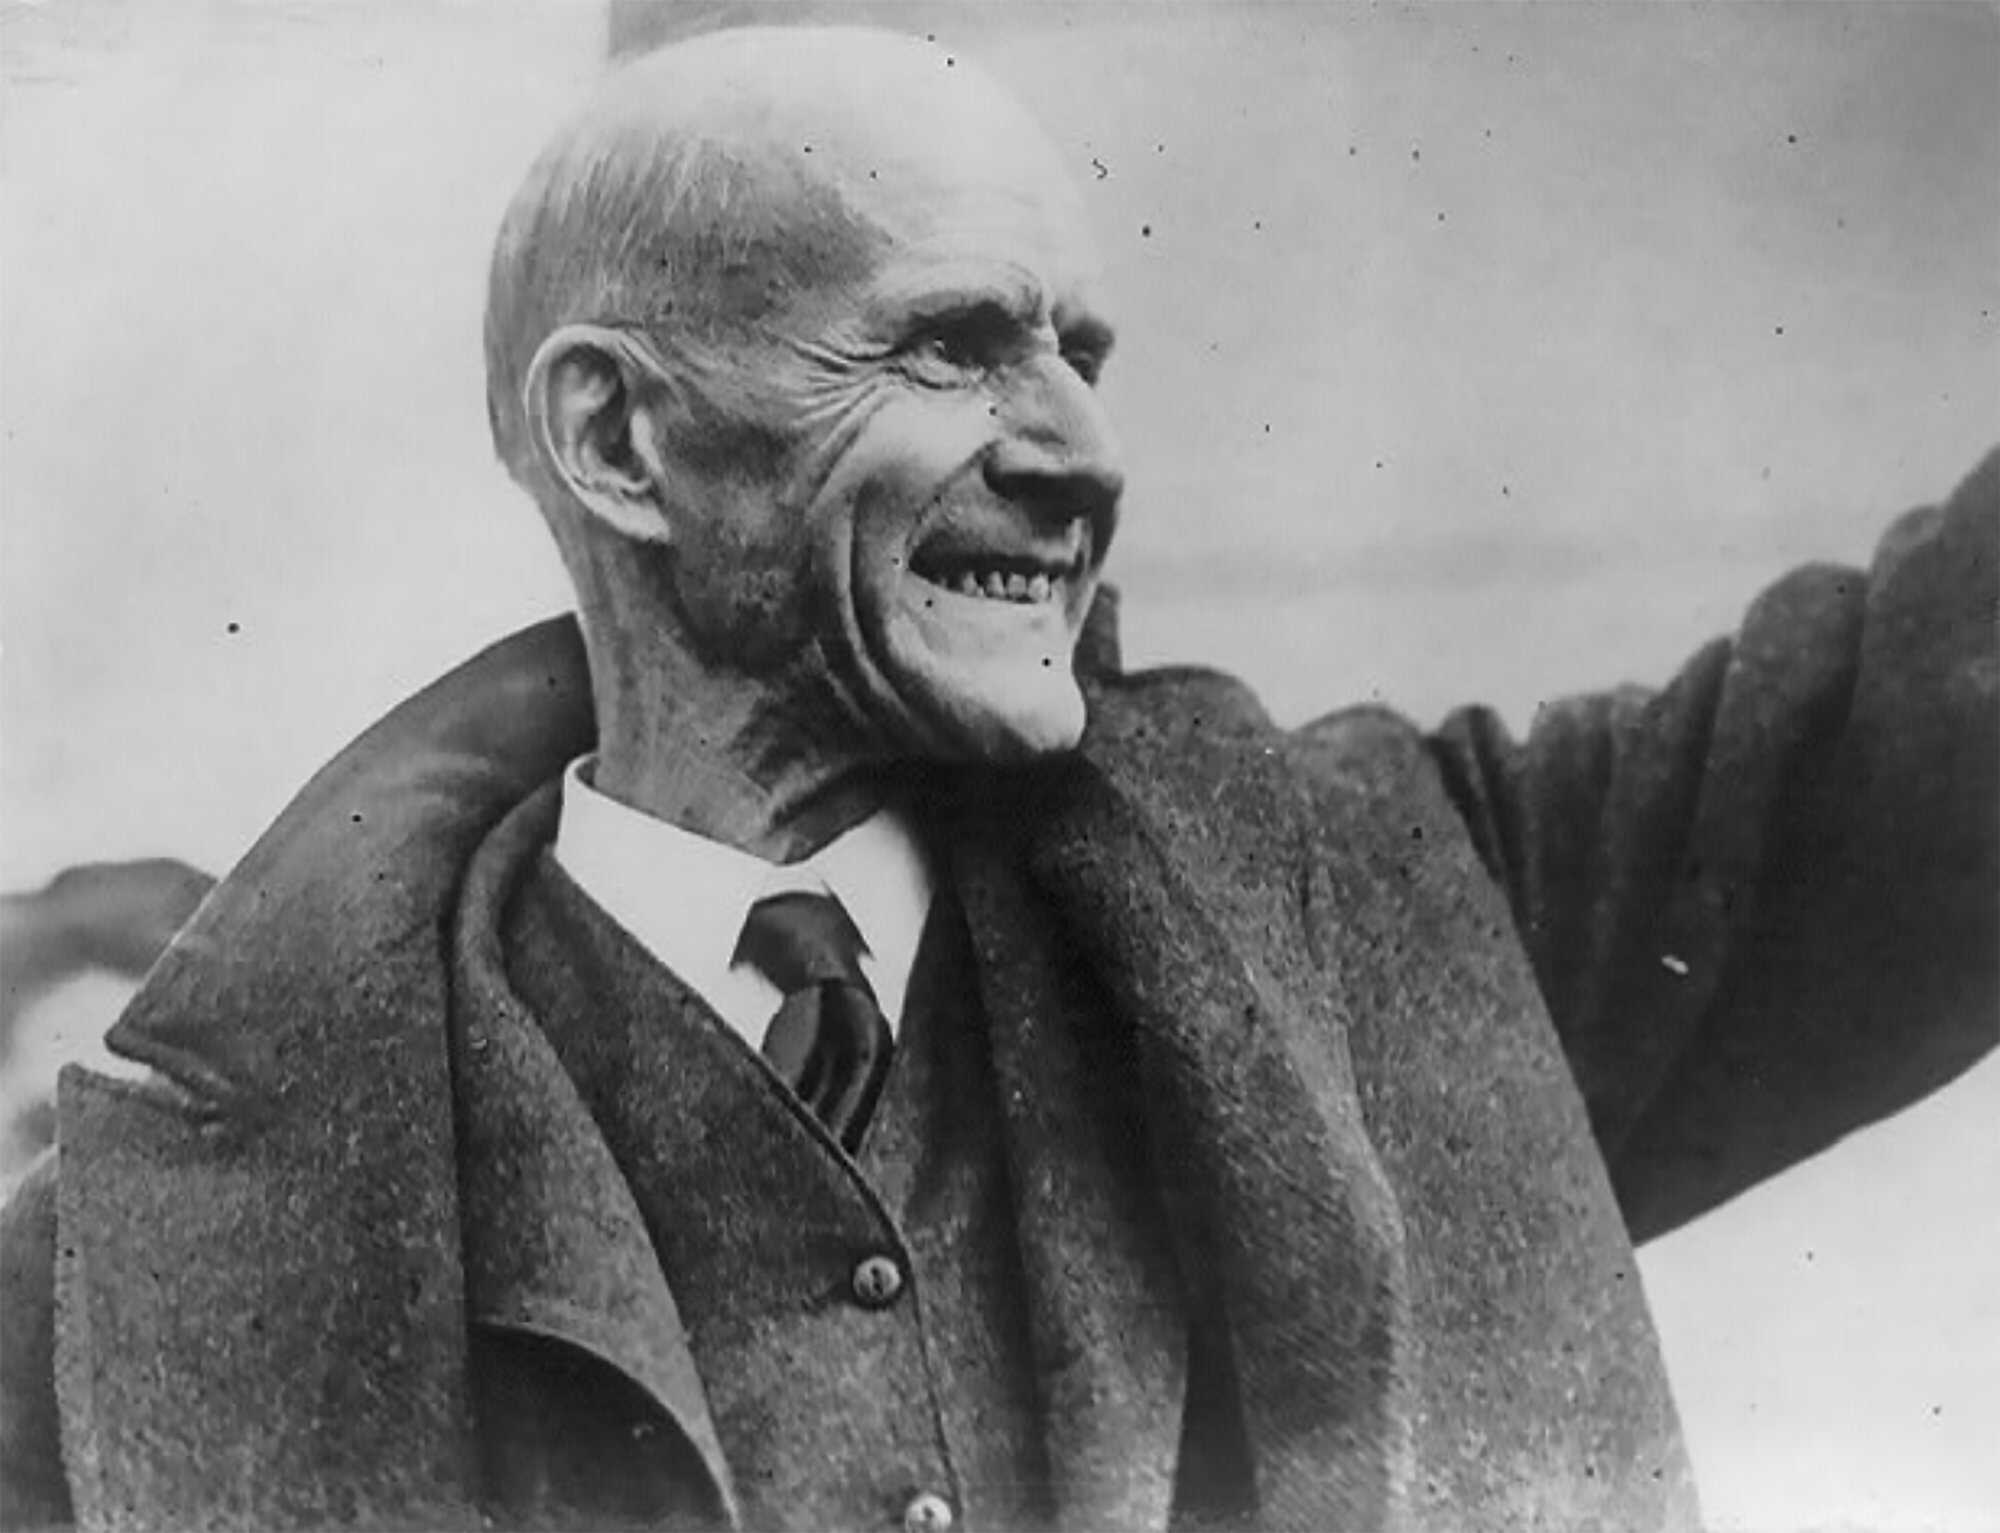 Wilson-Eugene-debs-LOC-Eugene-V.-Debs,-5-times-Socialist-candidate-for-President,-set-free-from-prison-on-Christmas-Day-1921.jpg